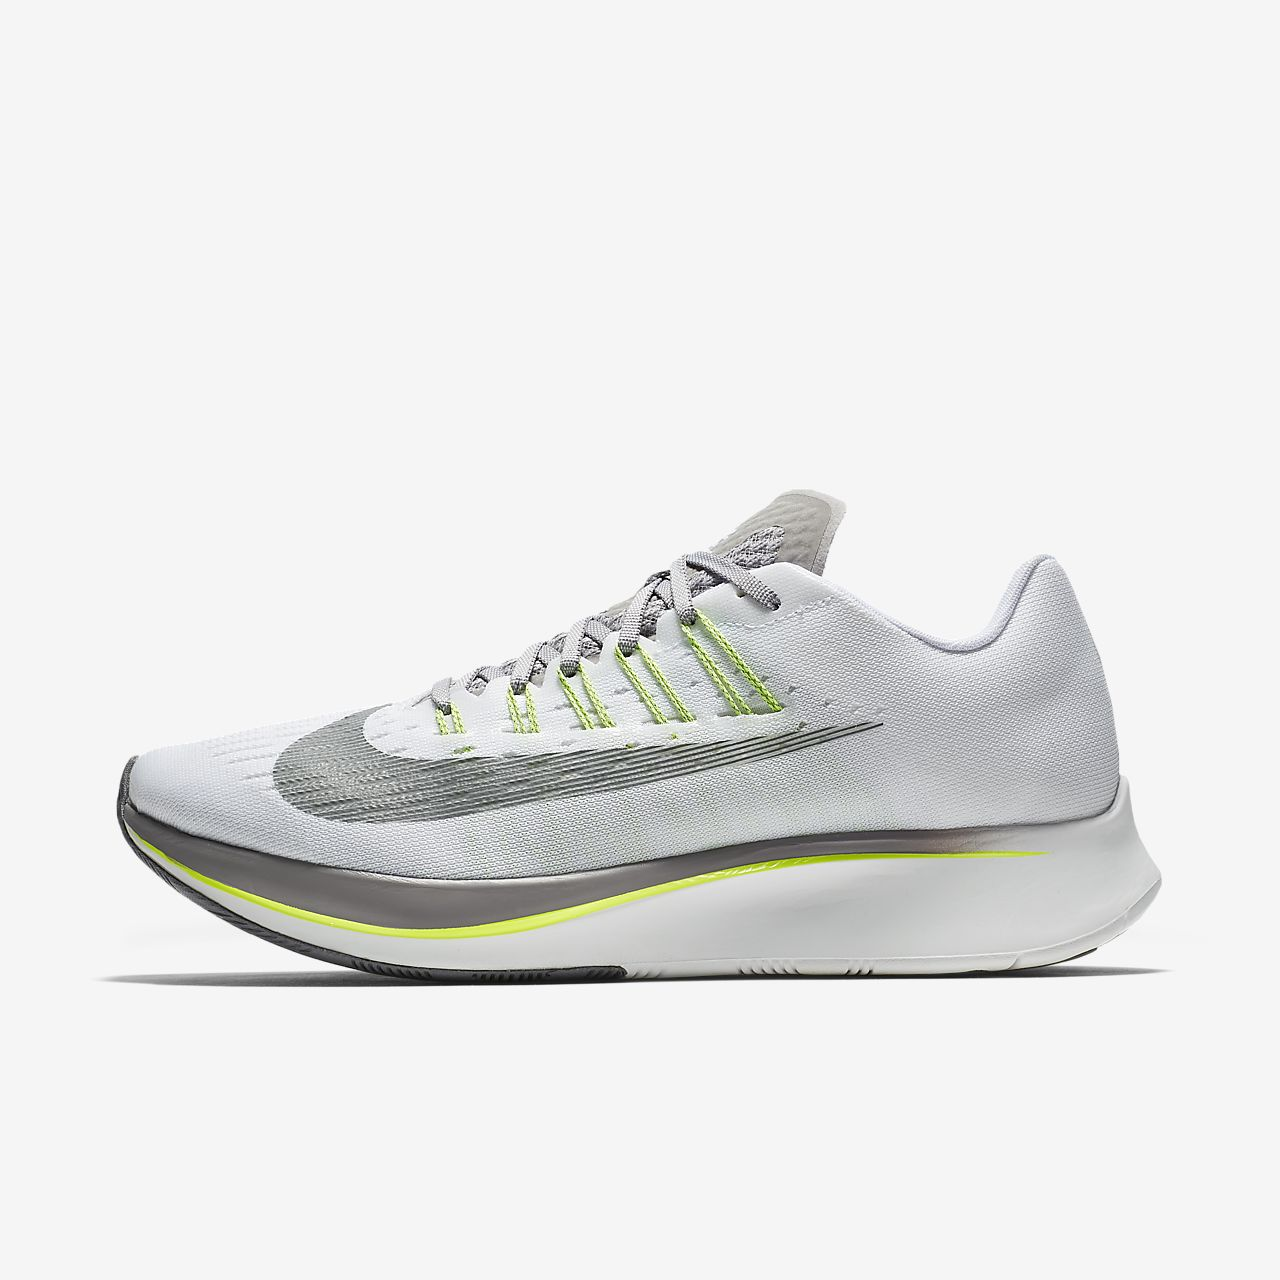 sports shoes a5d2a e67c1 ... Nike Zoom Fly Men s Running Shoe